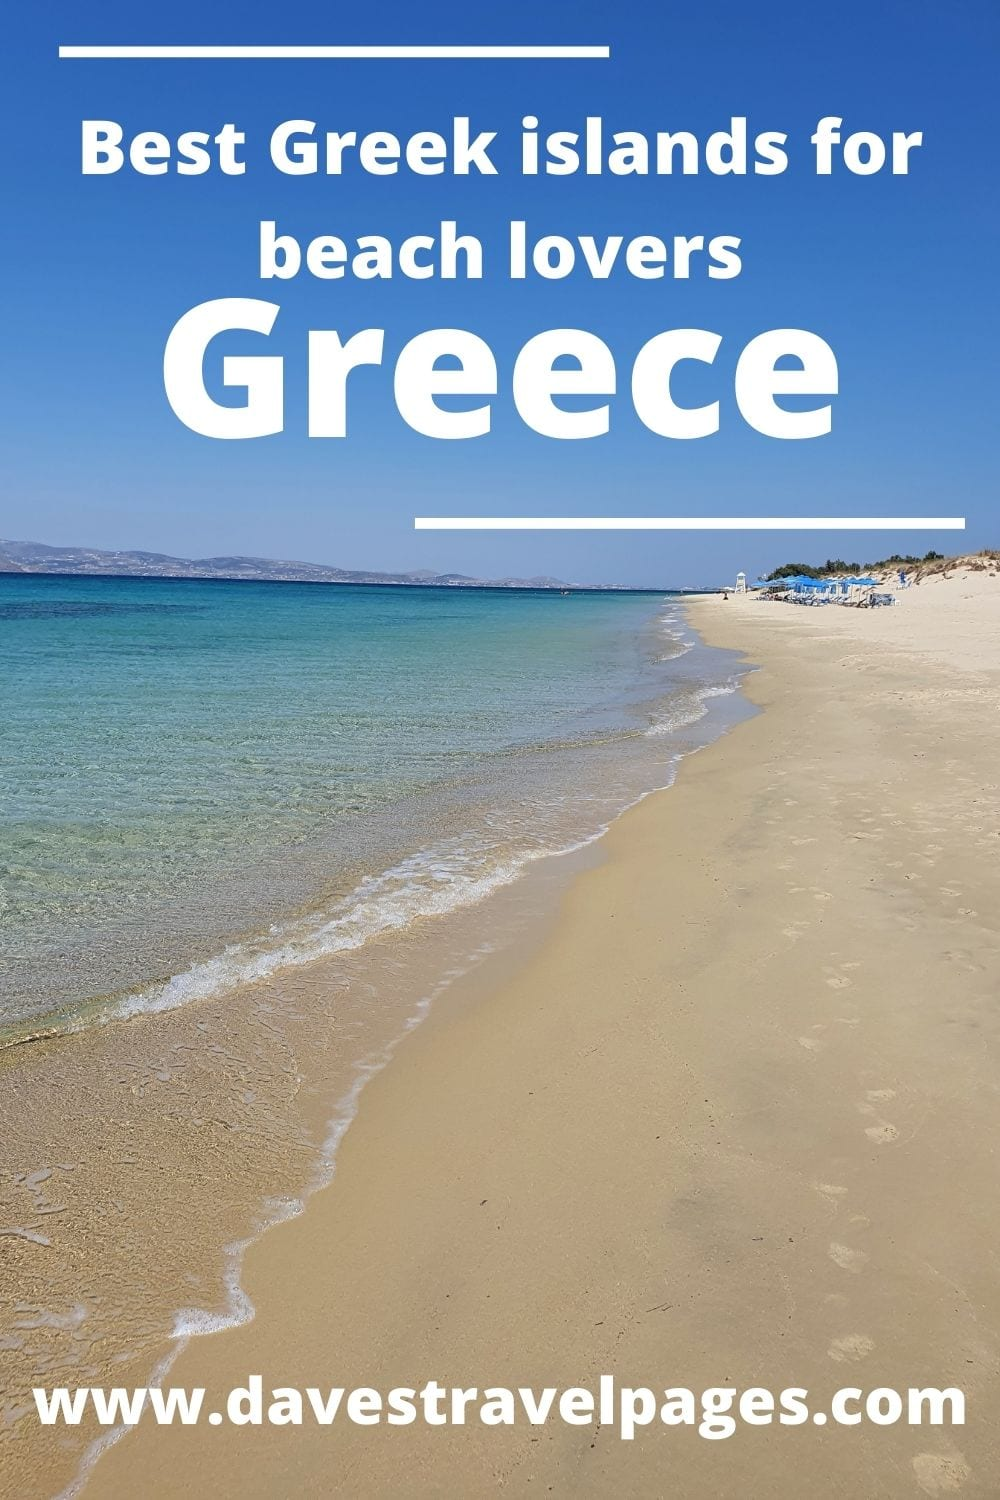 A guide to the best Greek islands for beaches